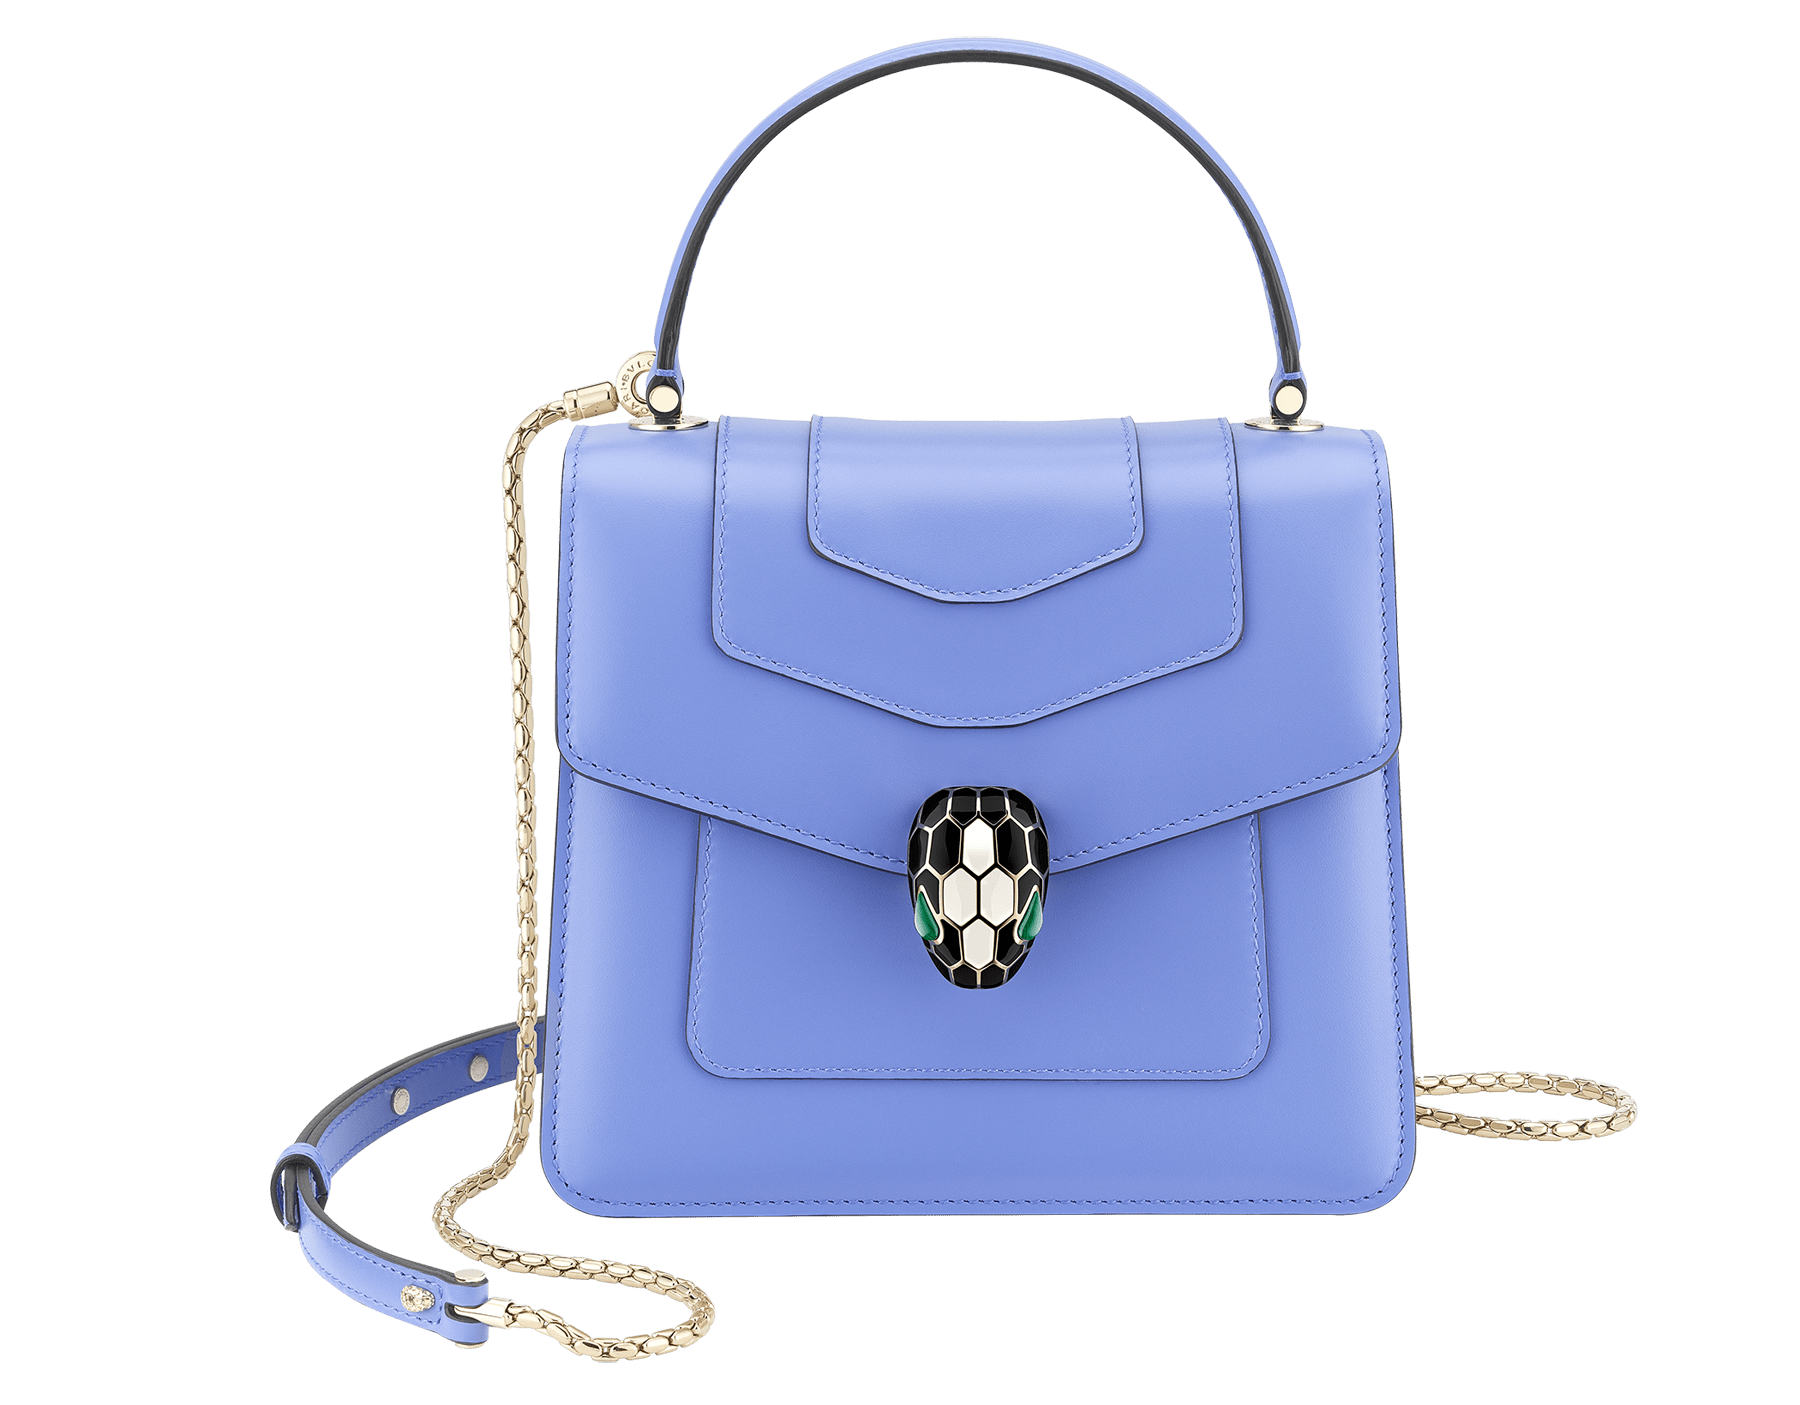 """Serpenti Forever "" top-handle bag in Lavender Amethyst lilac calf leather with Reef Coral red grosgrain inner lining. Iconic snakehead closure in light gold-plated brass embellished with black and white agate enamel and green malachite eyes 290517 image 1"